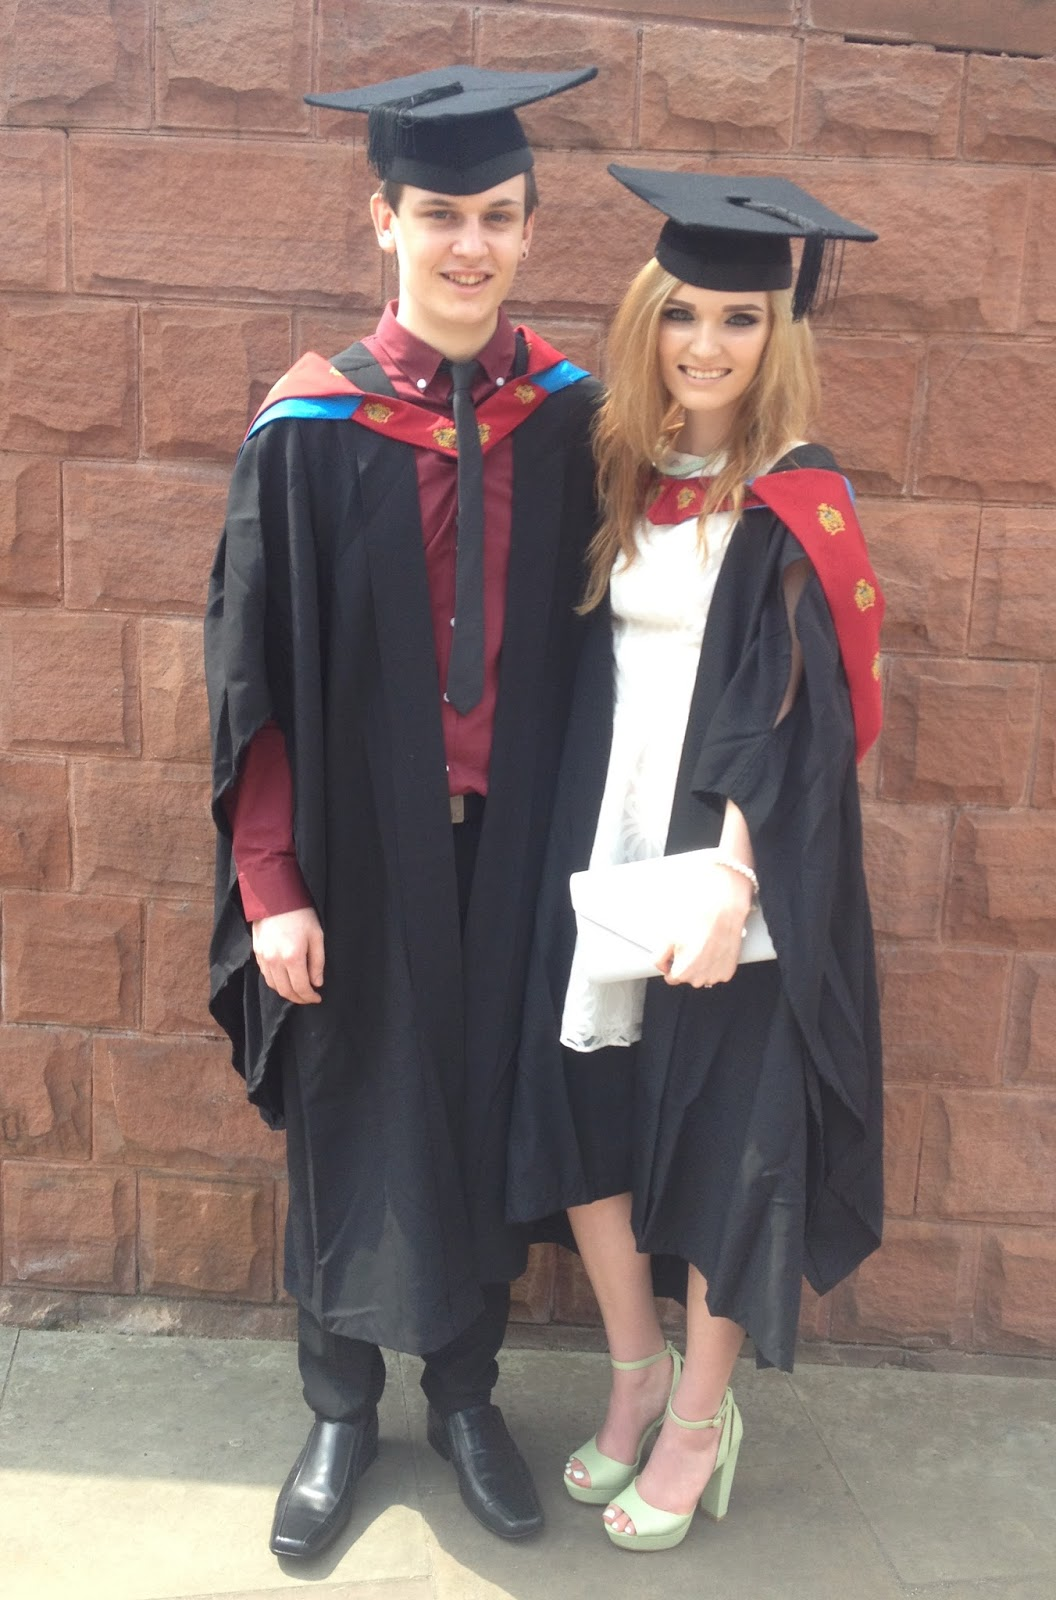 Old Fashioned Mmu Graduation Gown Image - Wedding and flowers ...